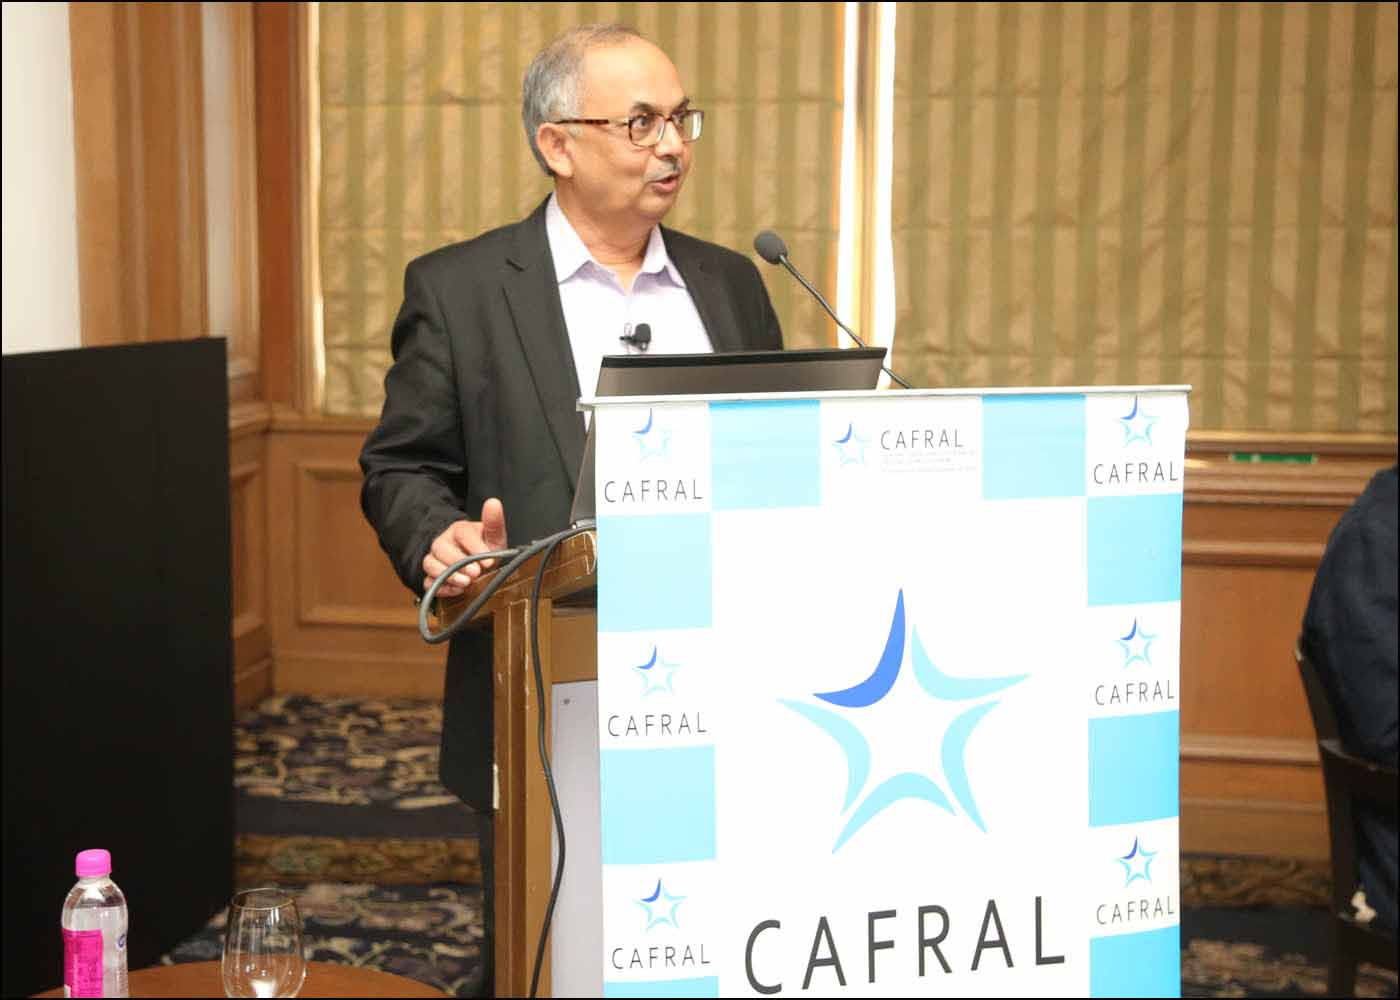 Chandan Sinha, Addl Director (Learning), CAFRAL